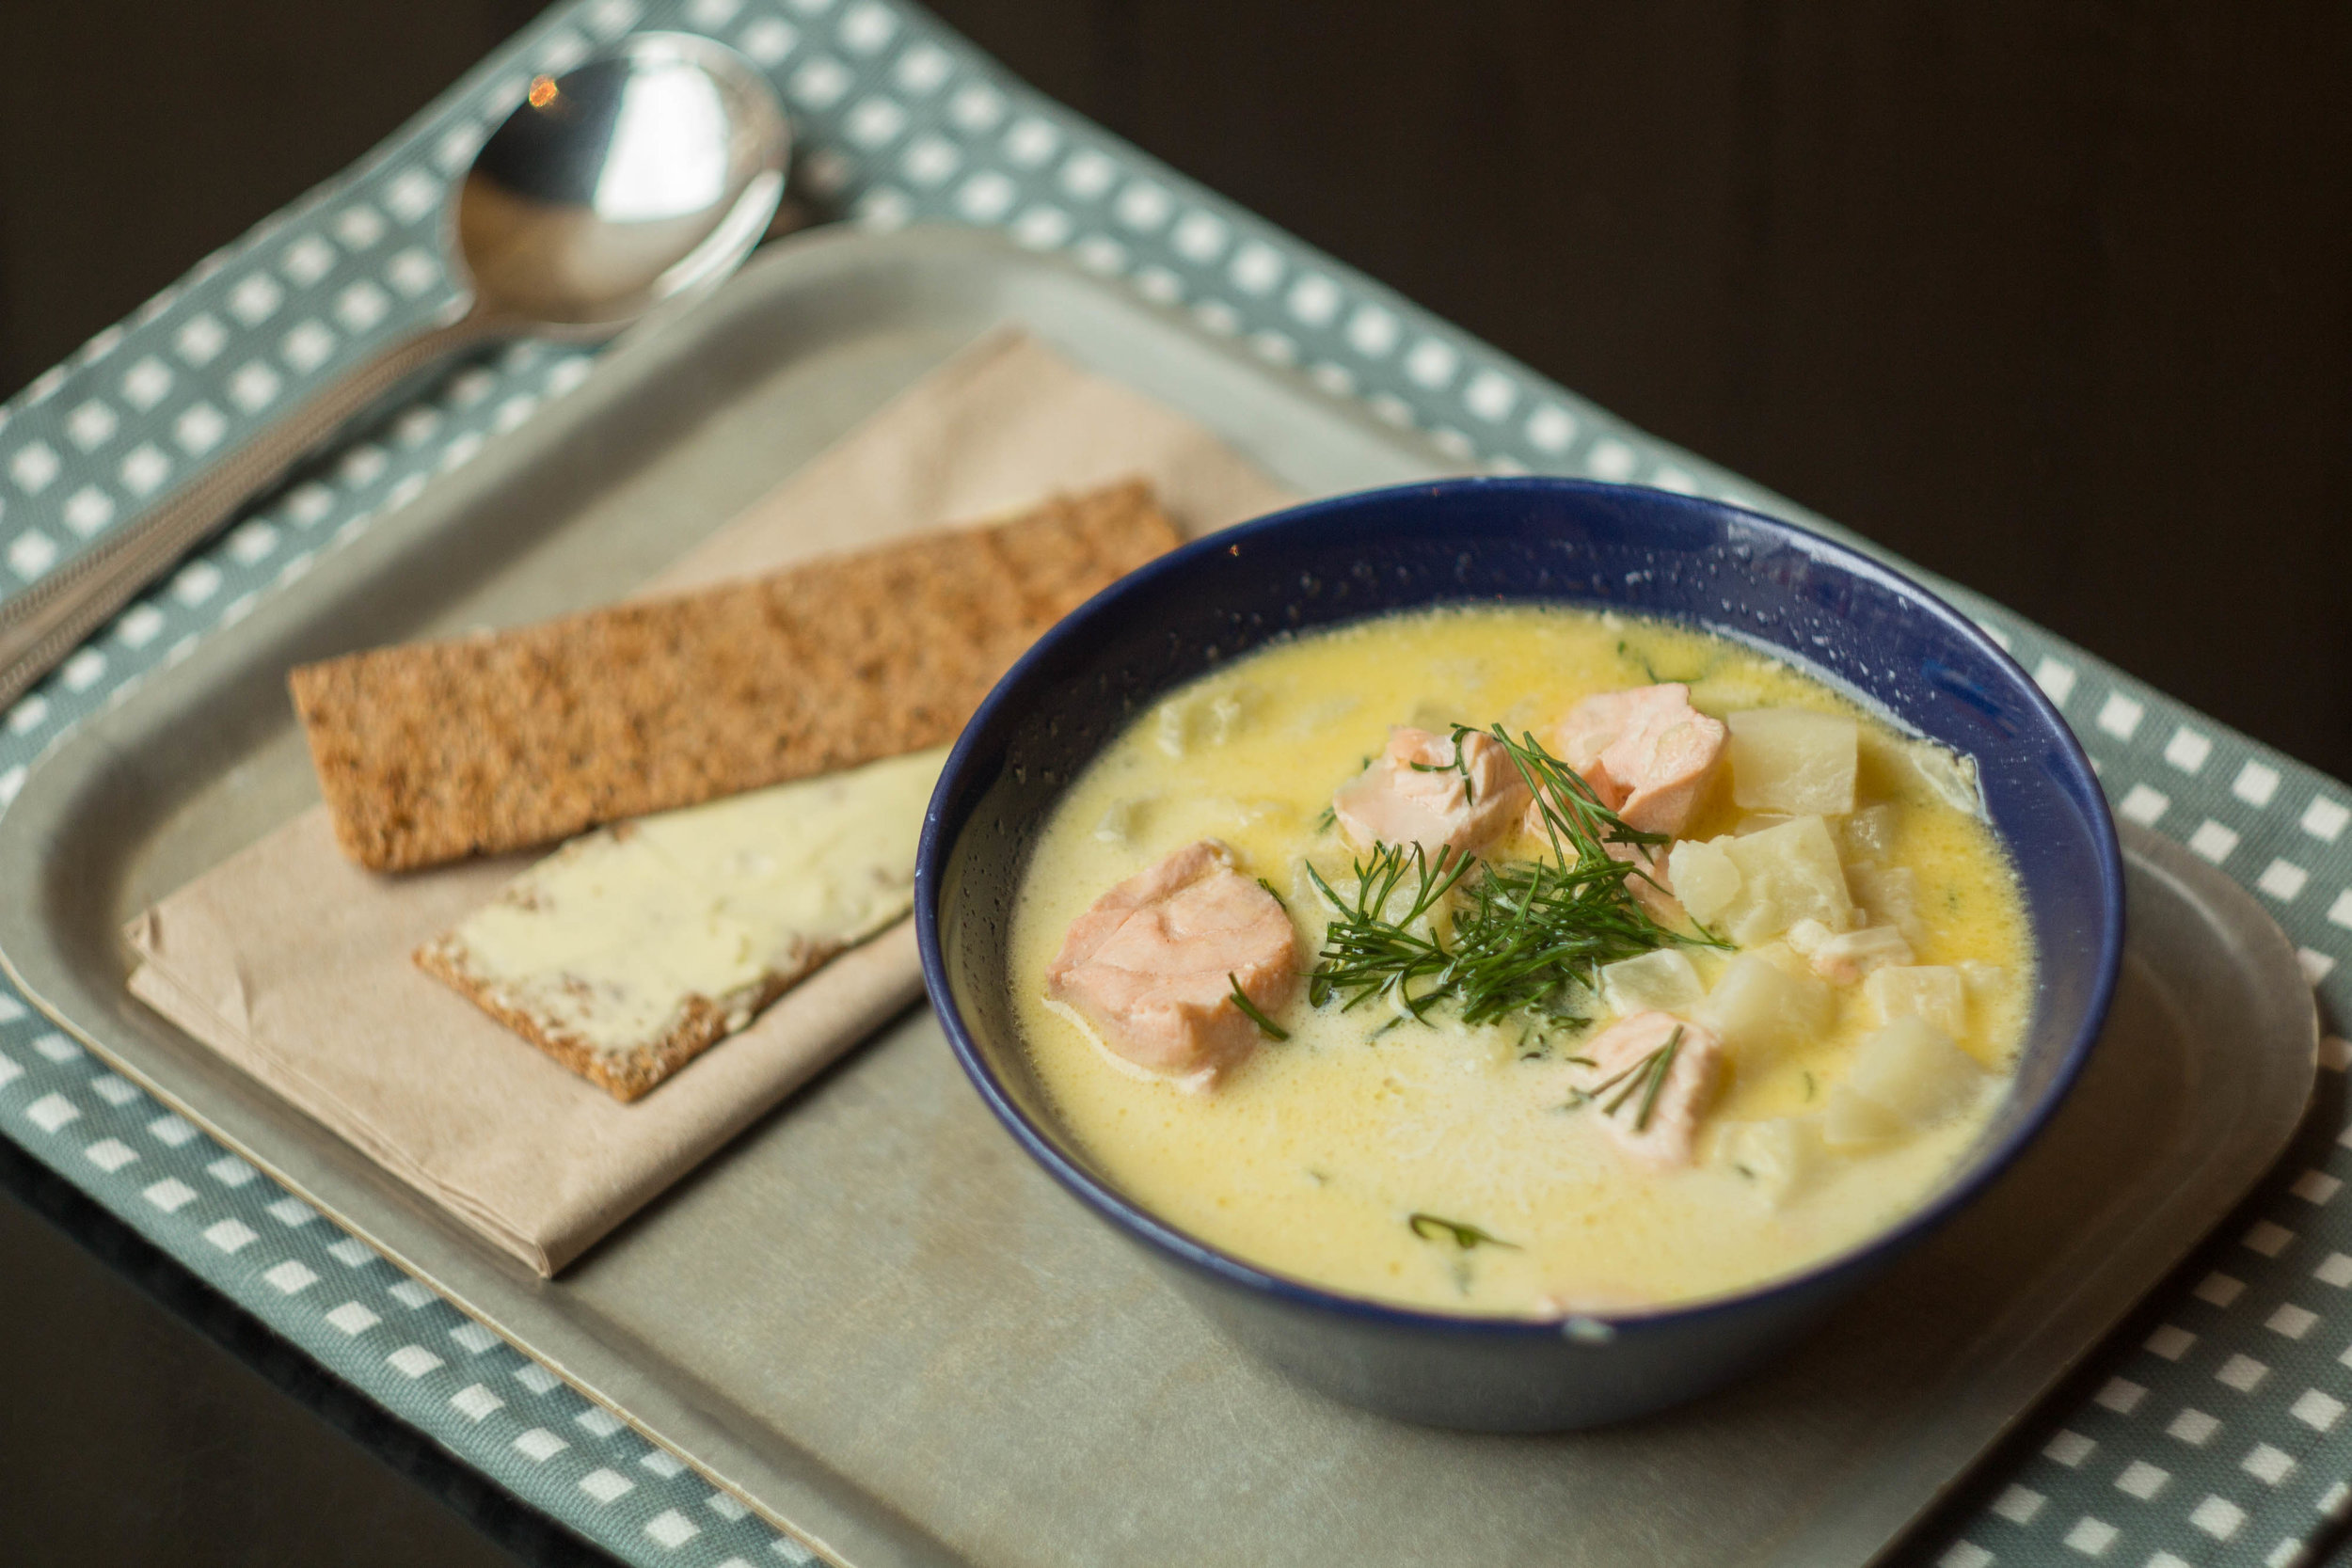 Nordic Bakery: Salmon Soup with Rye Crackers